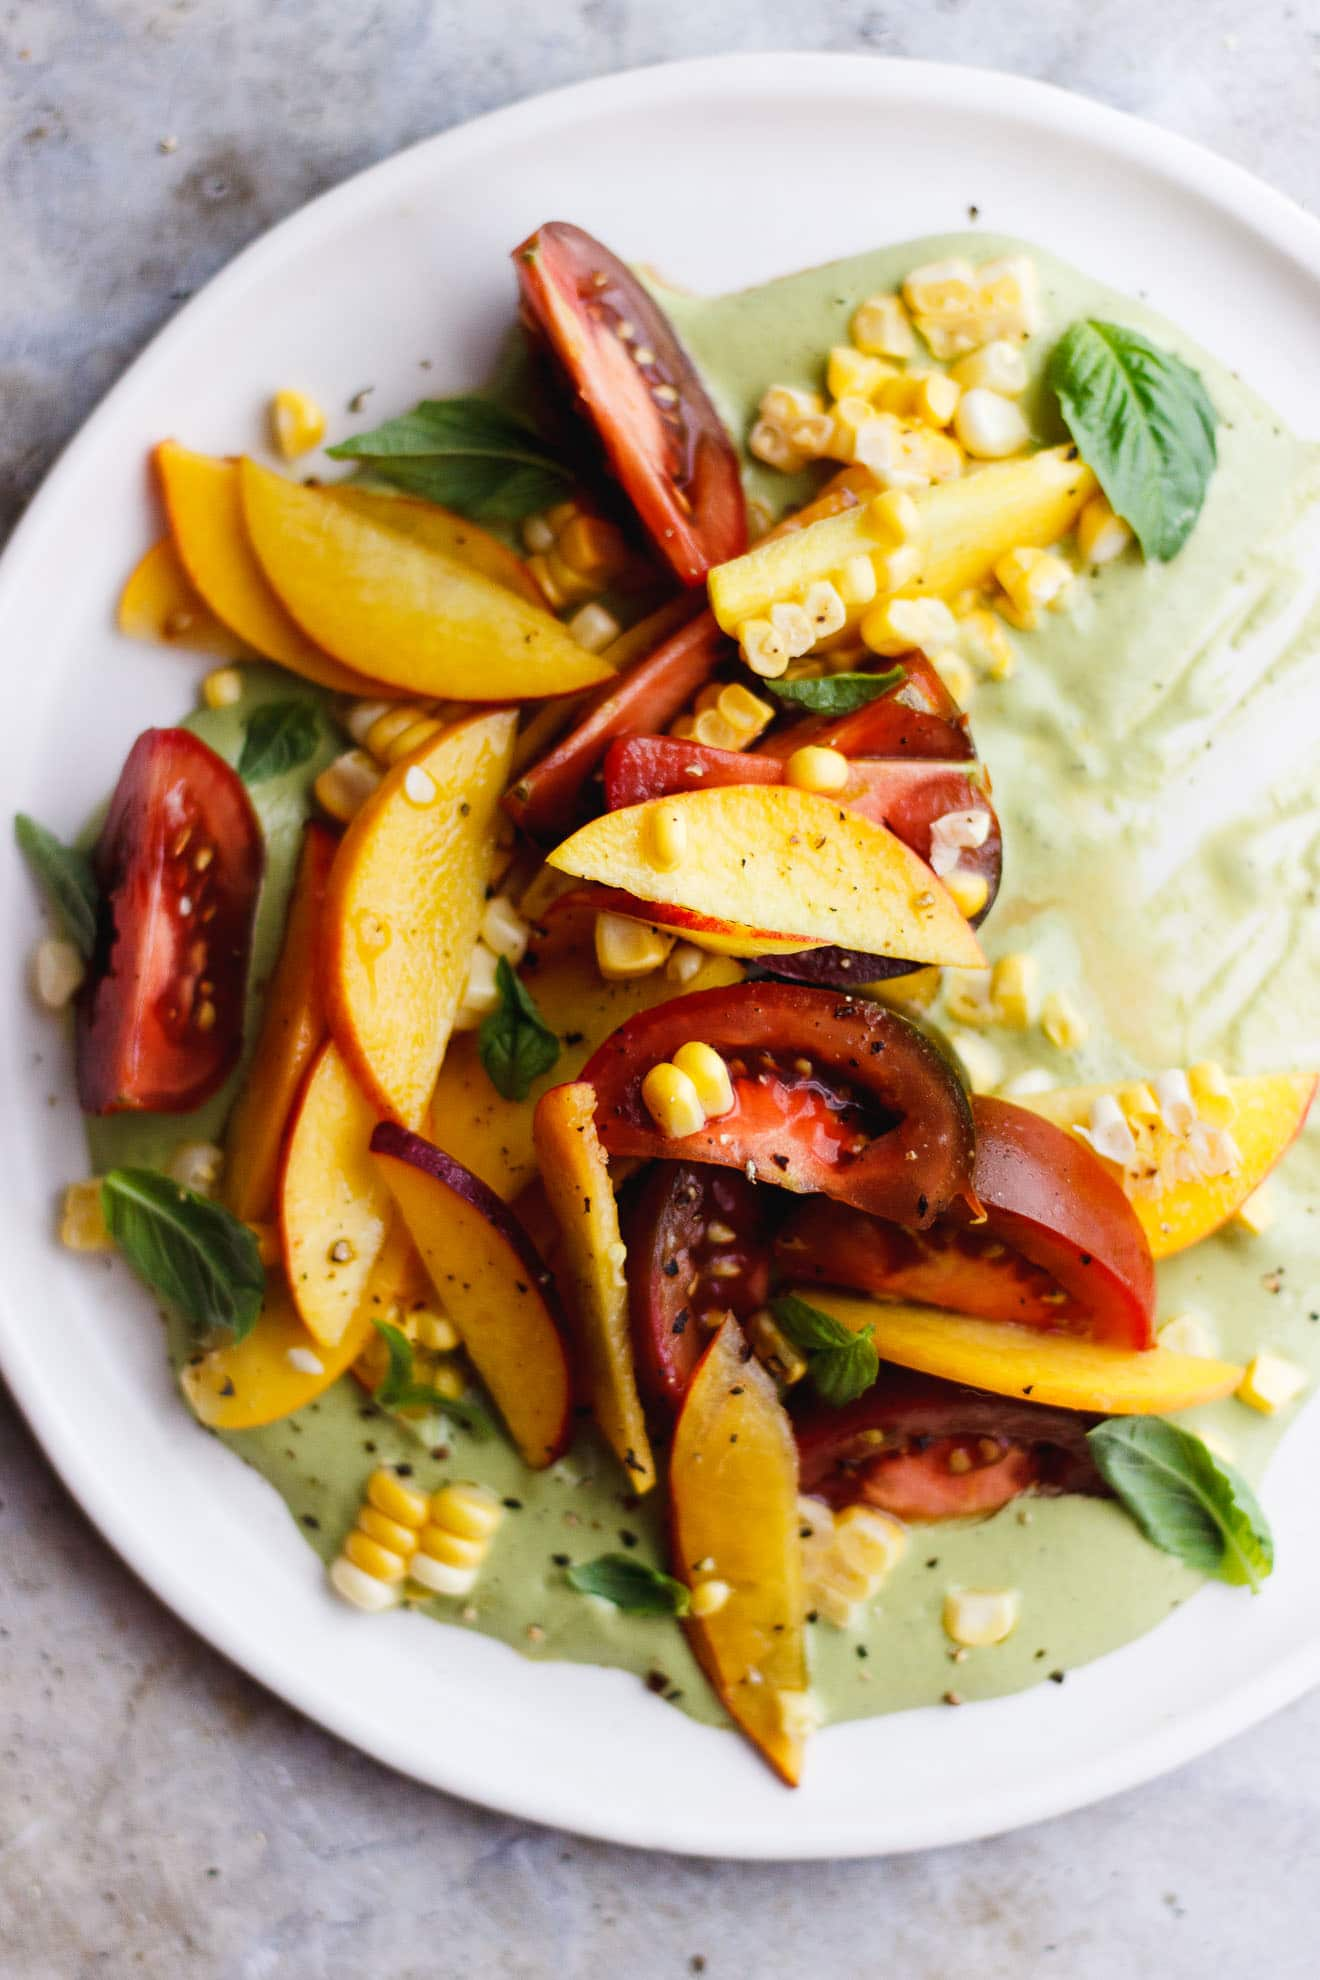 TOMATO PEACH SALAD WITH CREAMY BASIL SAUCE